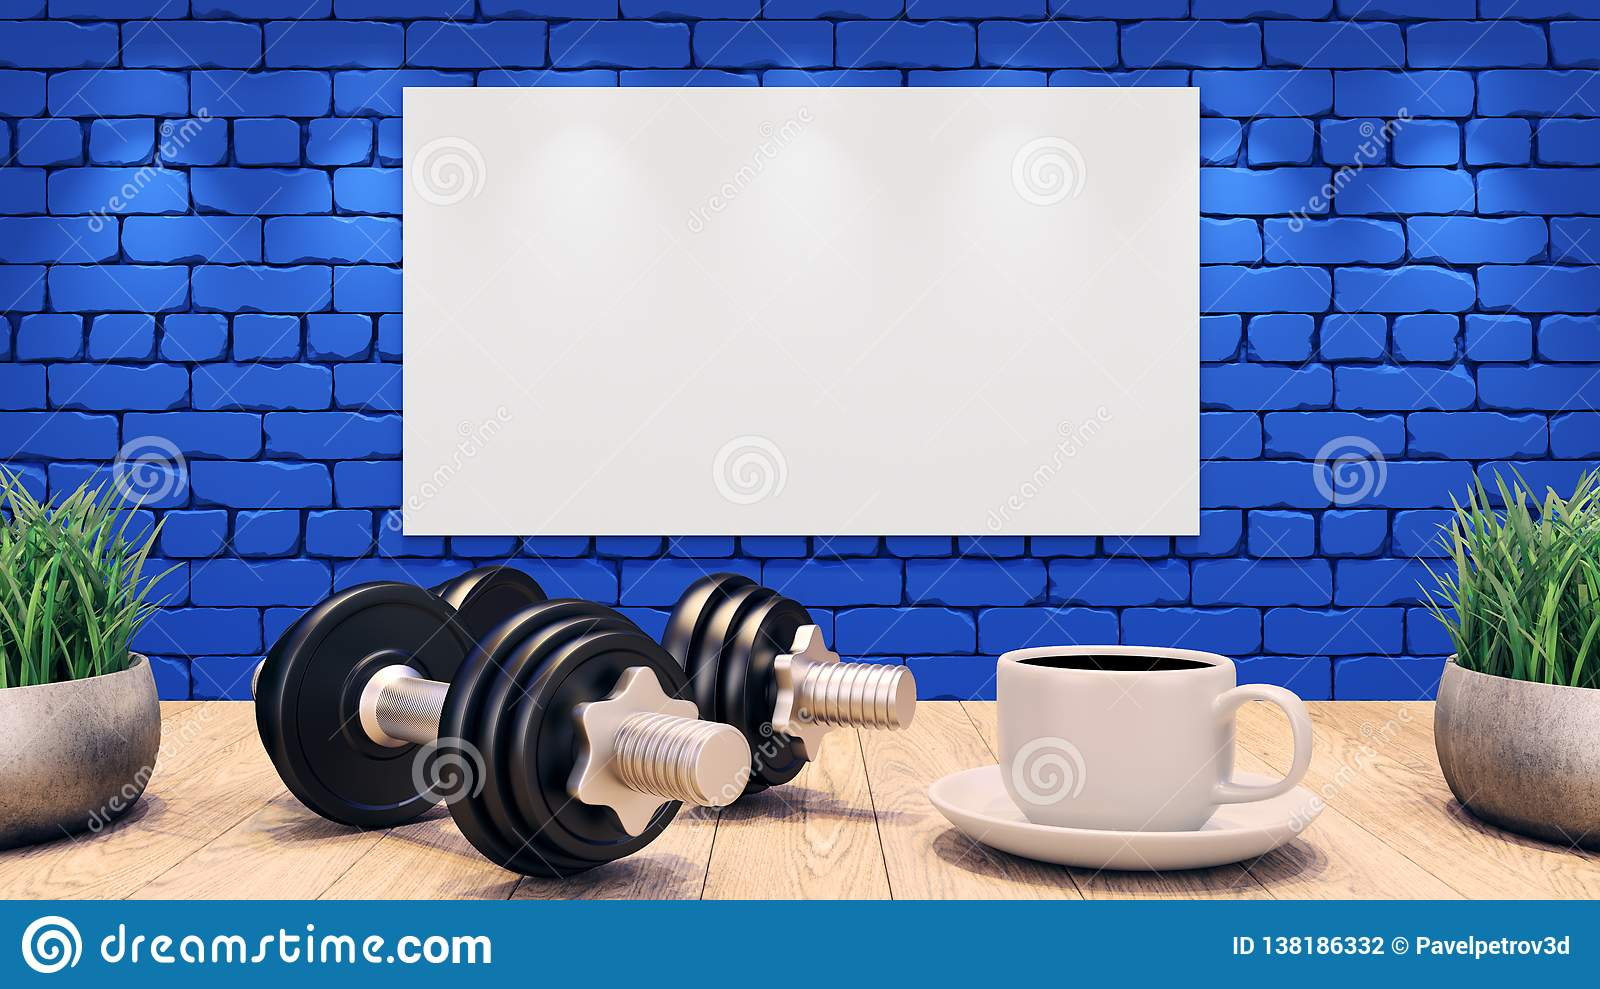 Two Dumbbells and a cup of coffee on a wooden table. White Blank Poster on the blue brick wall. 3d illustration